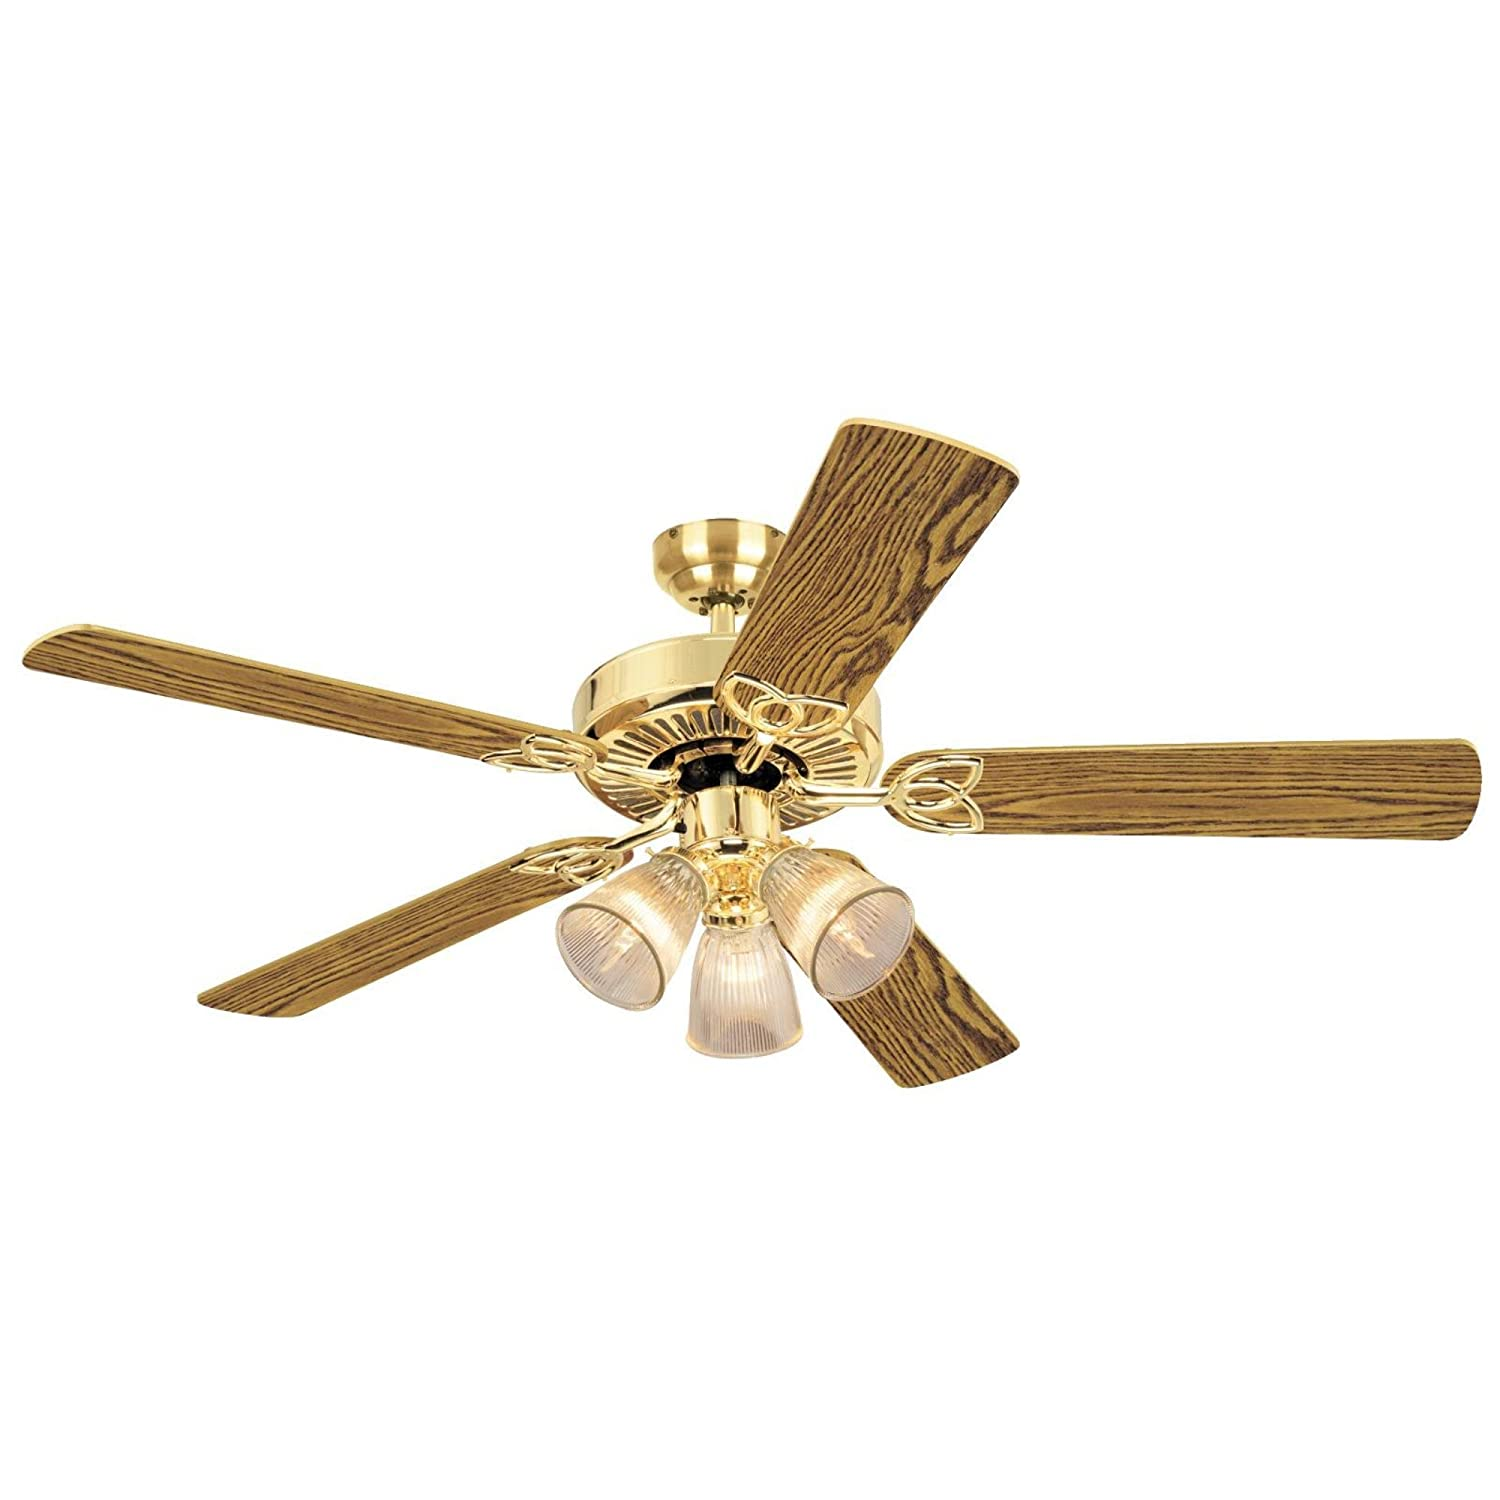 Com 7804365 Vintage Three Light 52 Inch Reversible Five Blade Indoor Ceiling Fan Polished Brass With Clear Ribbed Glass Shades Home Improvement